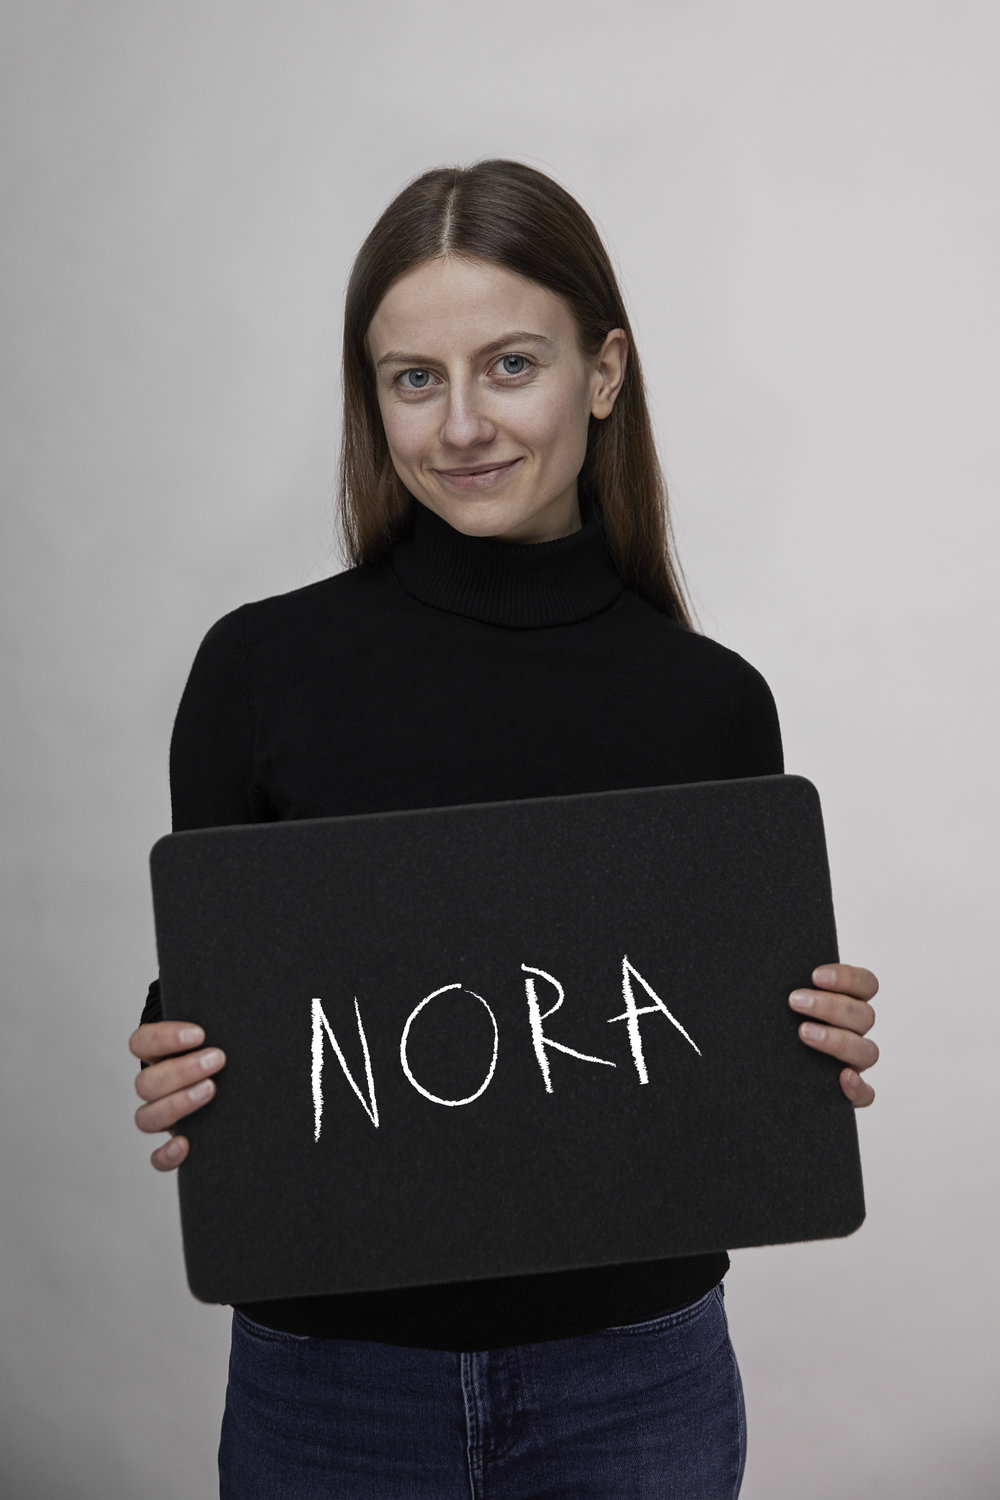 Nora - strategie